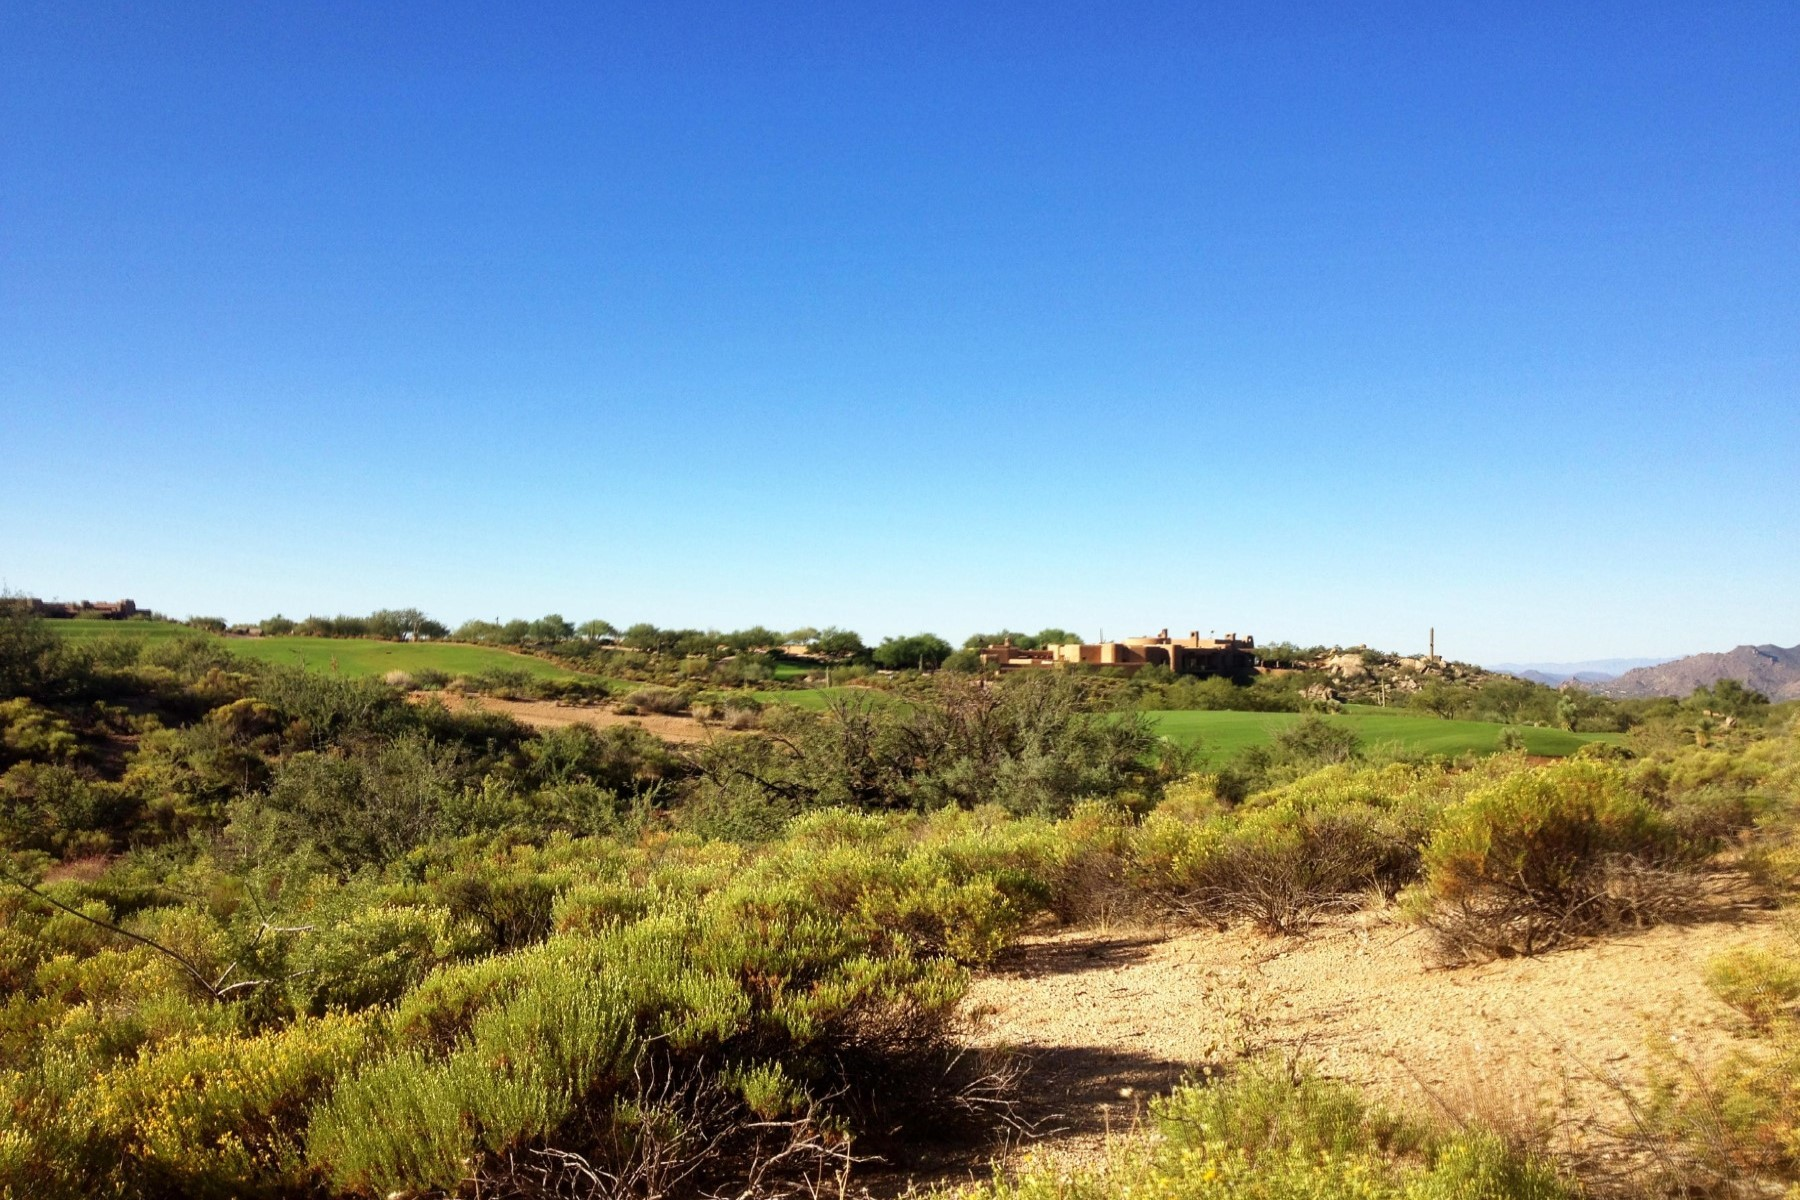 Land for Sale at Saguaro Forest Golf Course Homesite 41248 N 96th St #121 Scottsdale, Arizona, 85262 United States